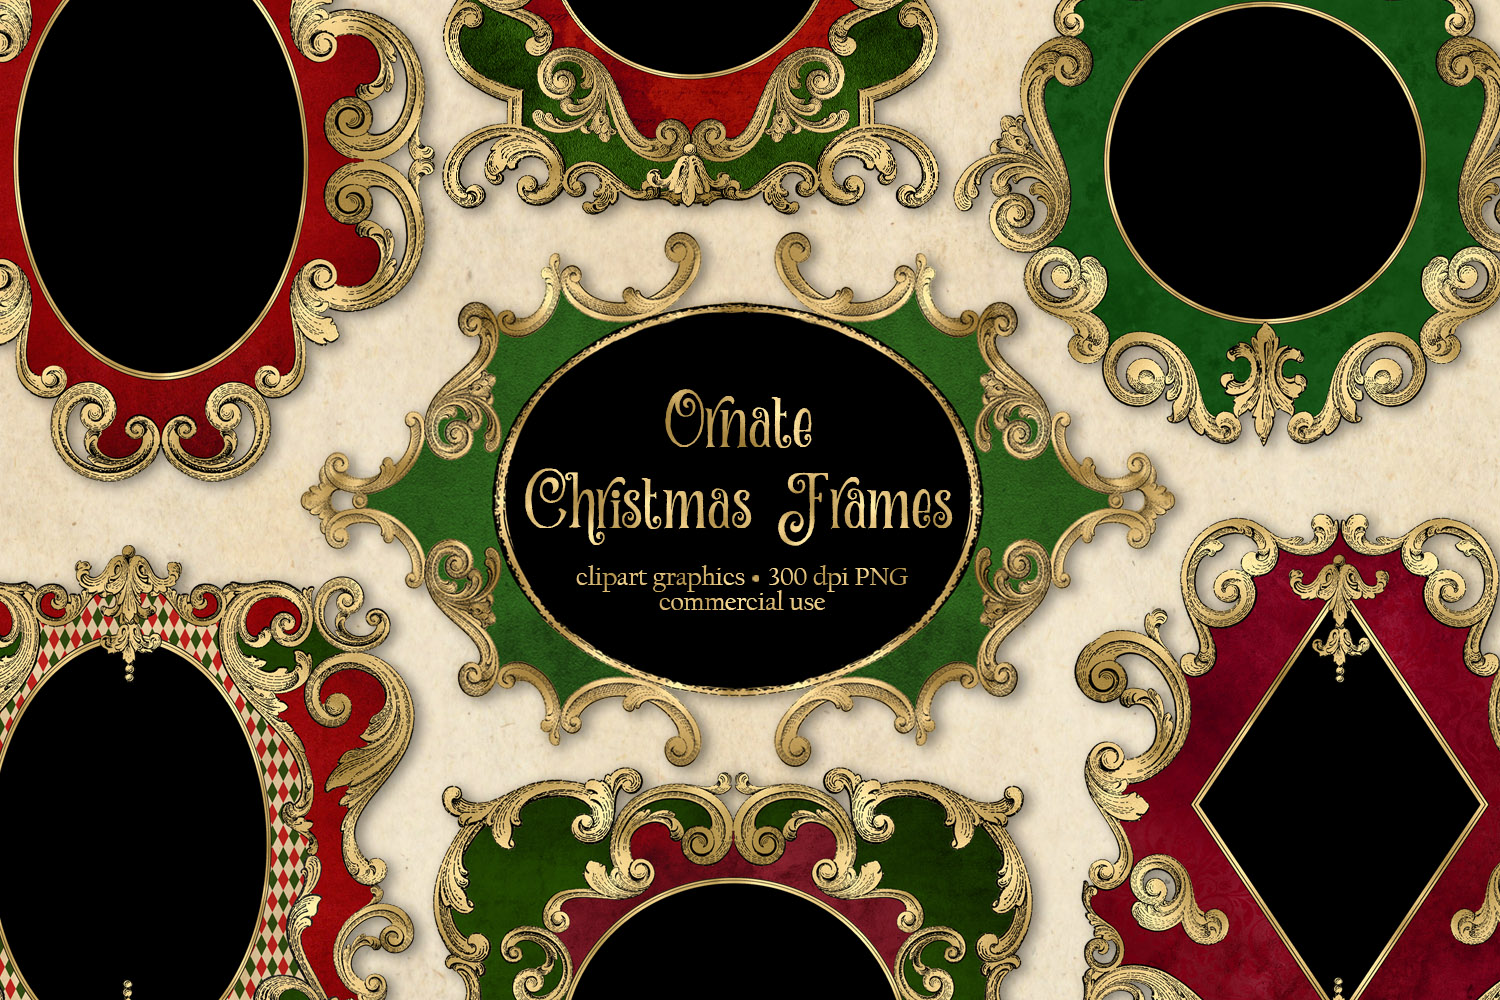 Ornate Christmas Frames Clipart example image 1